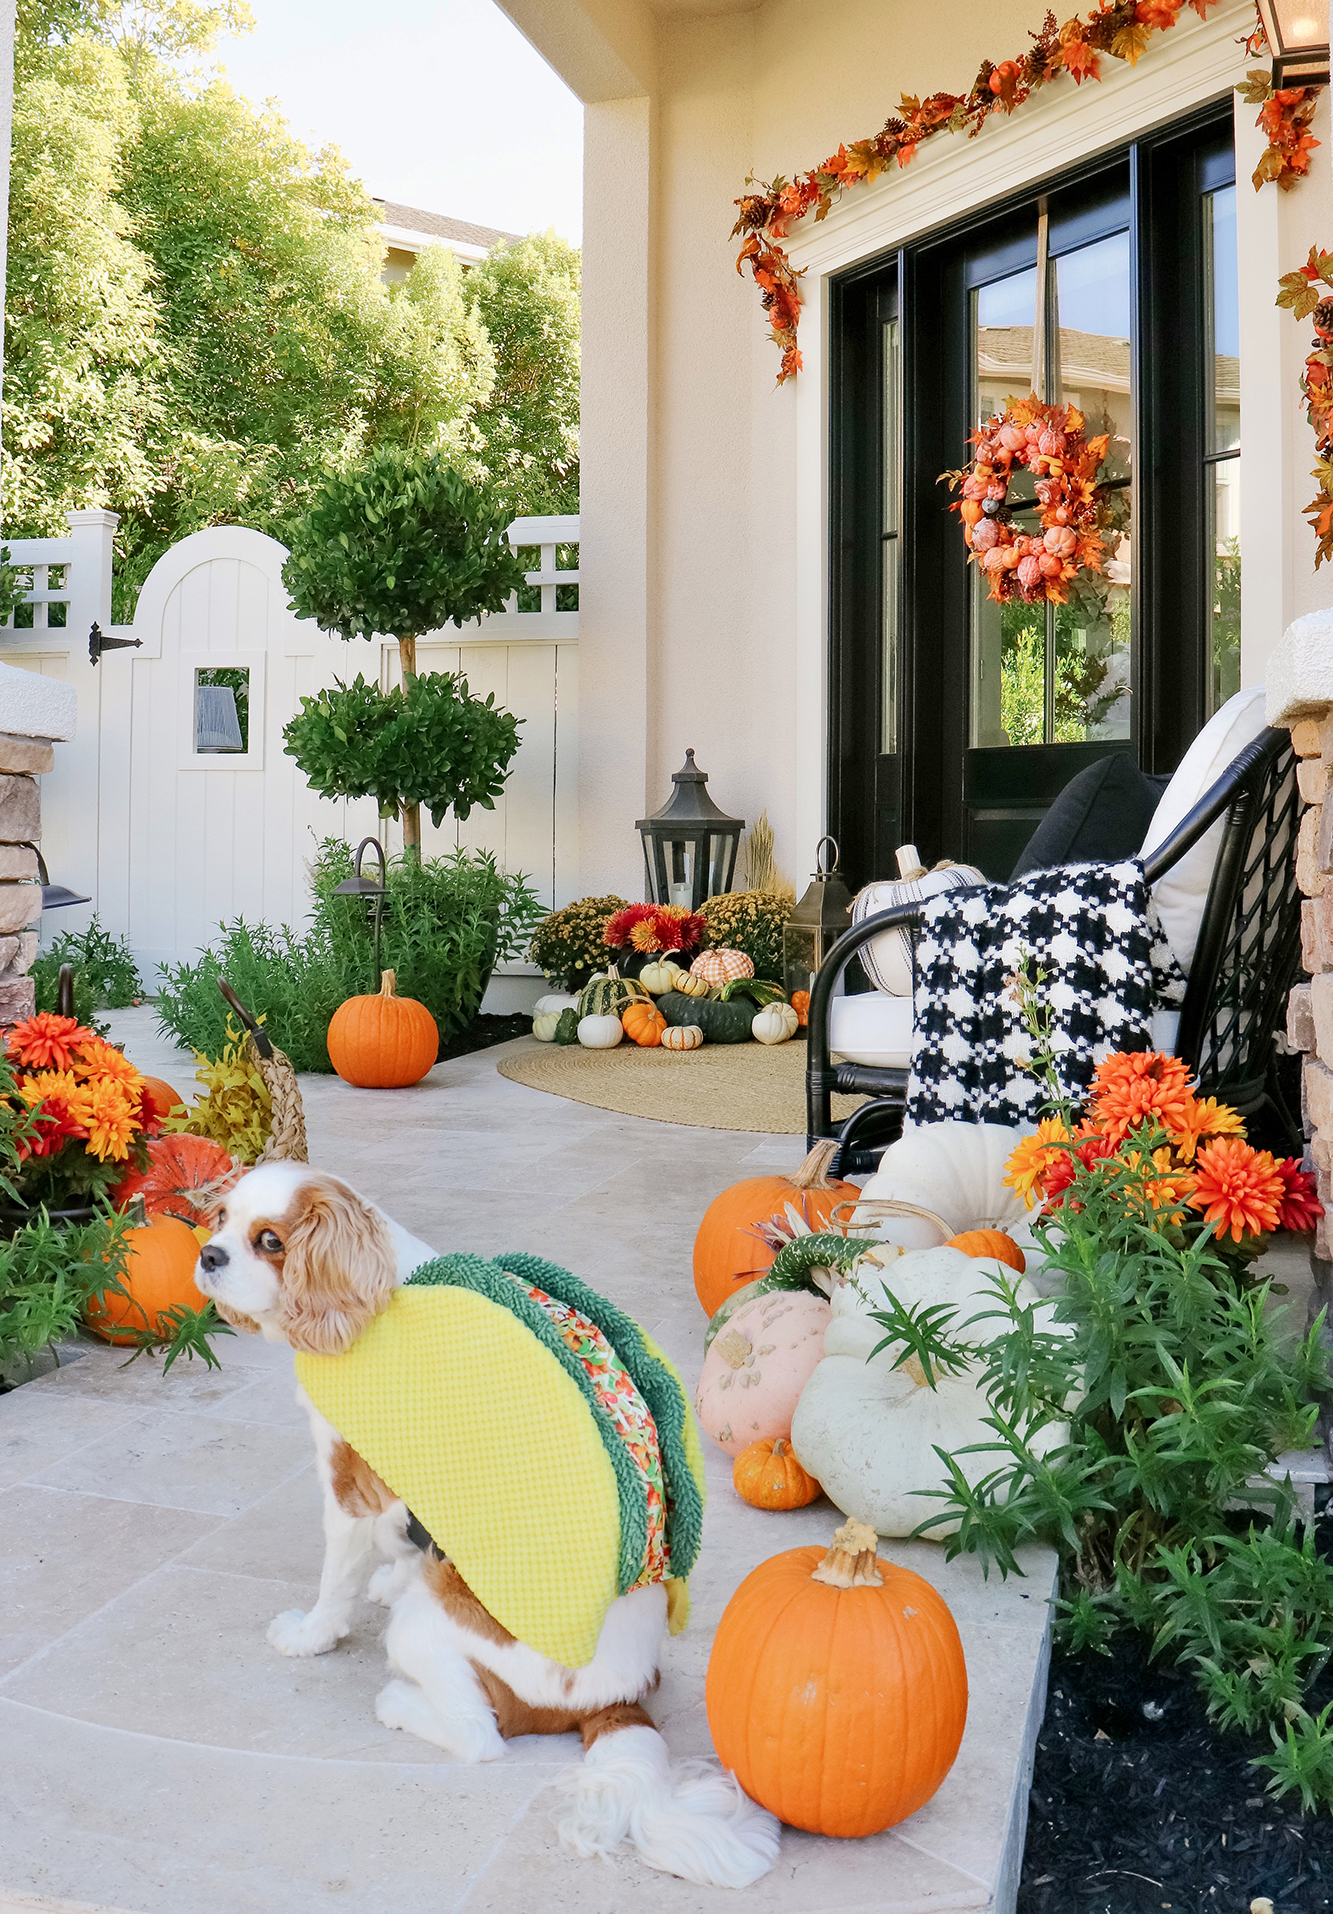 Affordable Pet Halloween Costumes & The Best Halloween Candy. We rounded up the cutest dog Halloween costumes that are under $8!